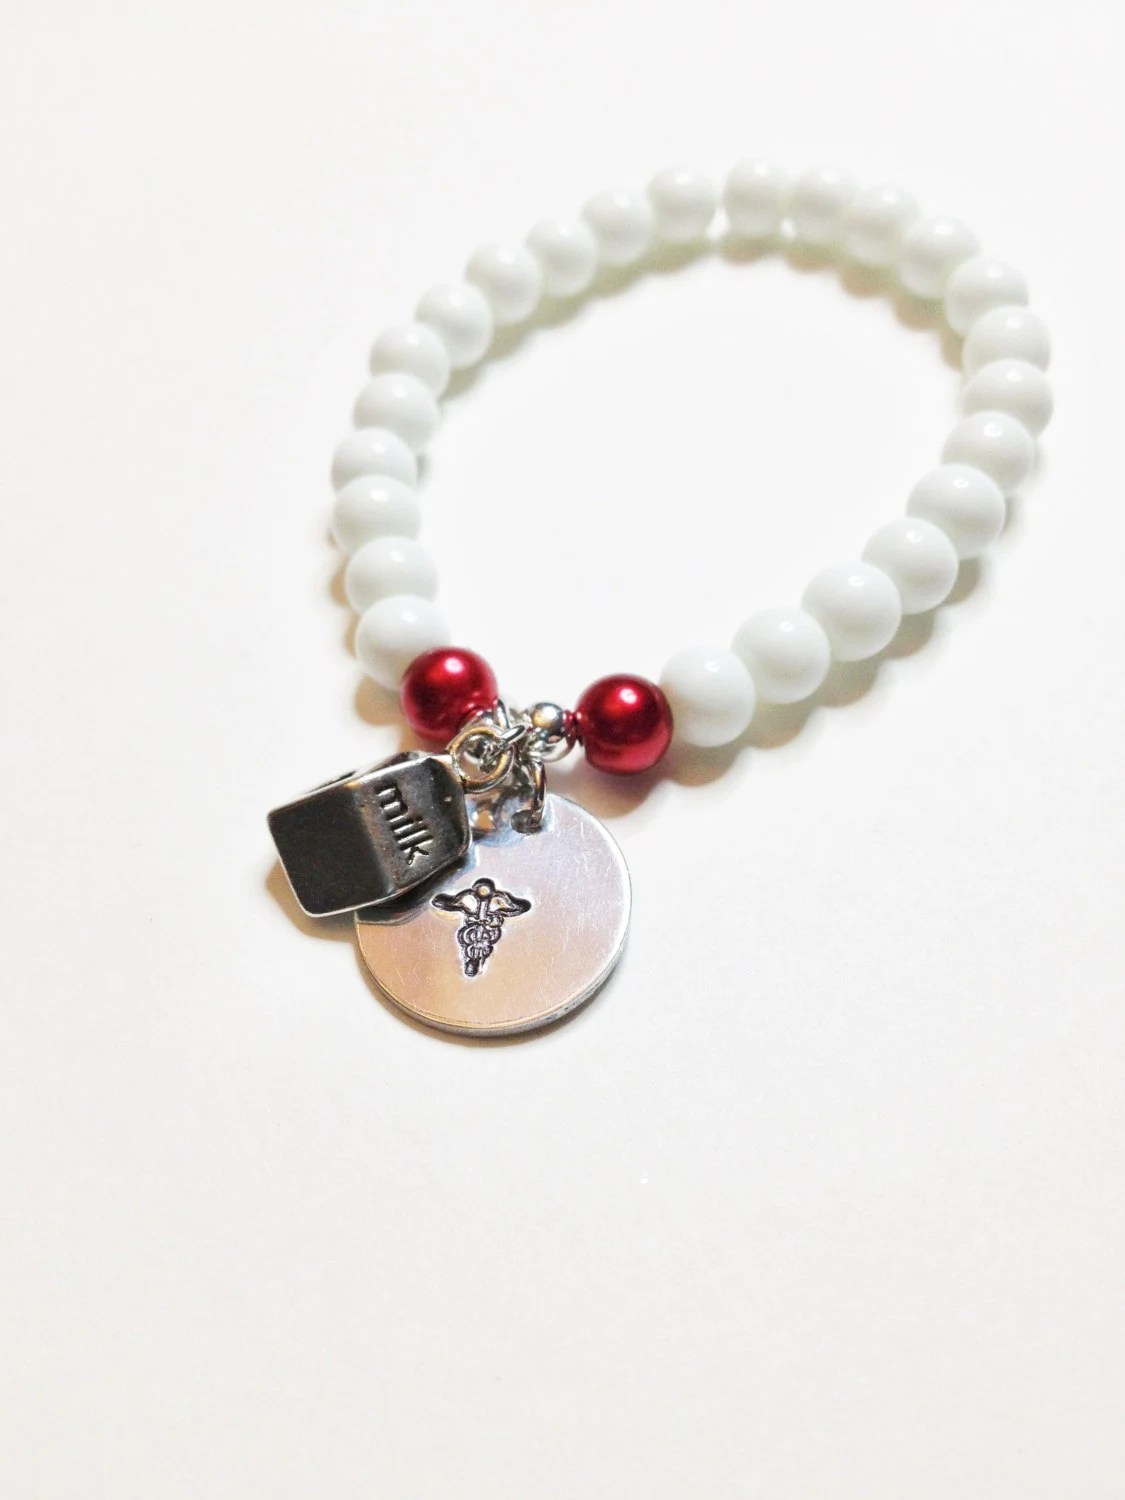 Customized Allergy Alert Bracelet Nut Allergy by IcyCoolCreations